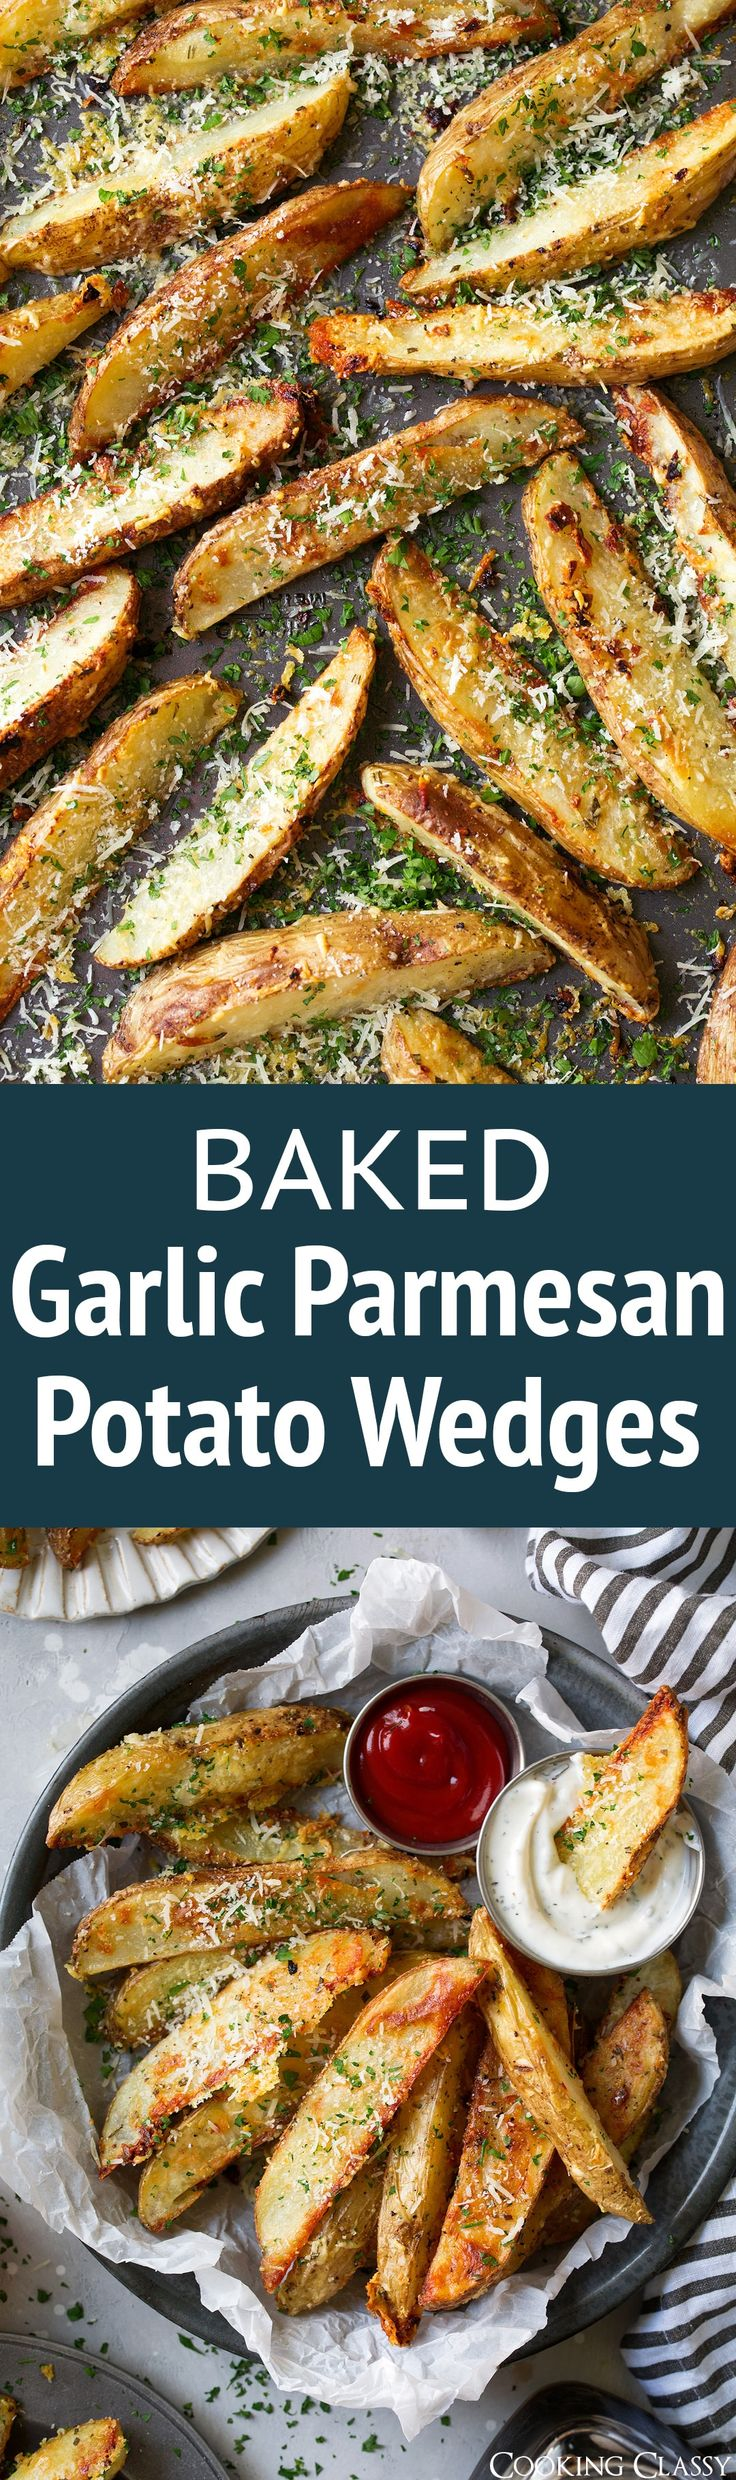 Baked Garlic Parmesan Potato Wedges - my family LOVES these! Perfect side to just about anything.